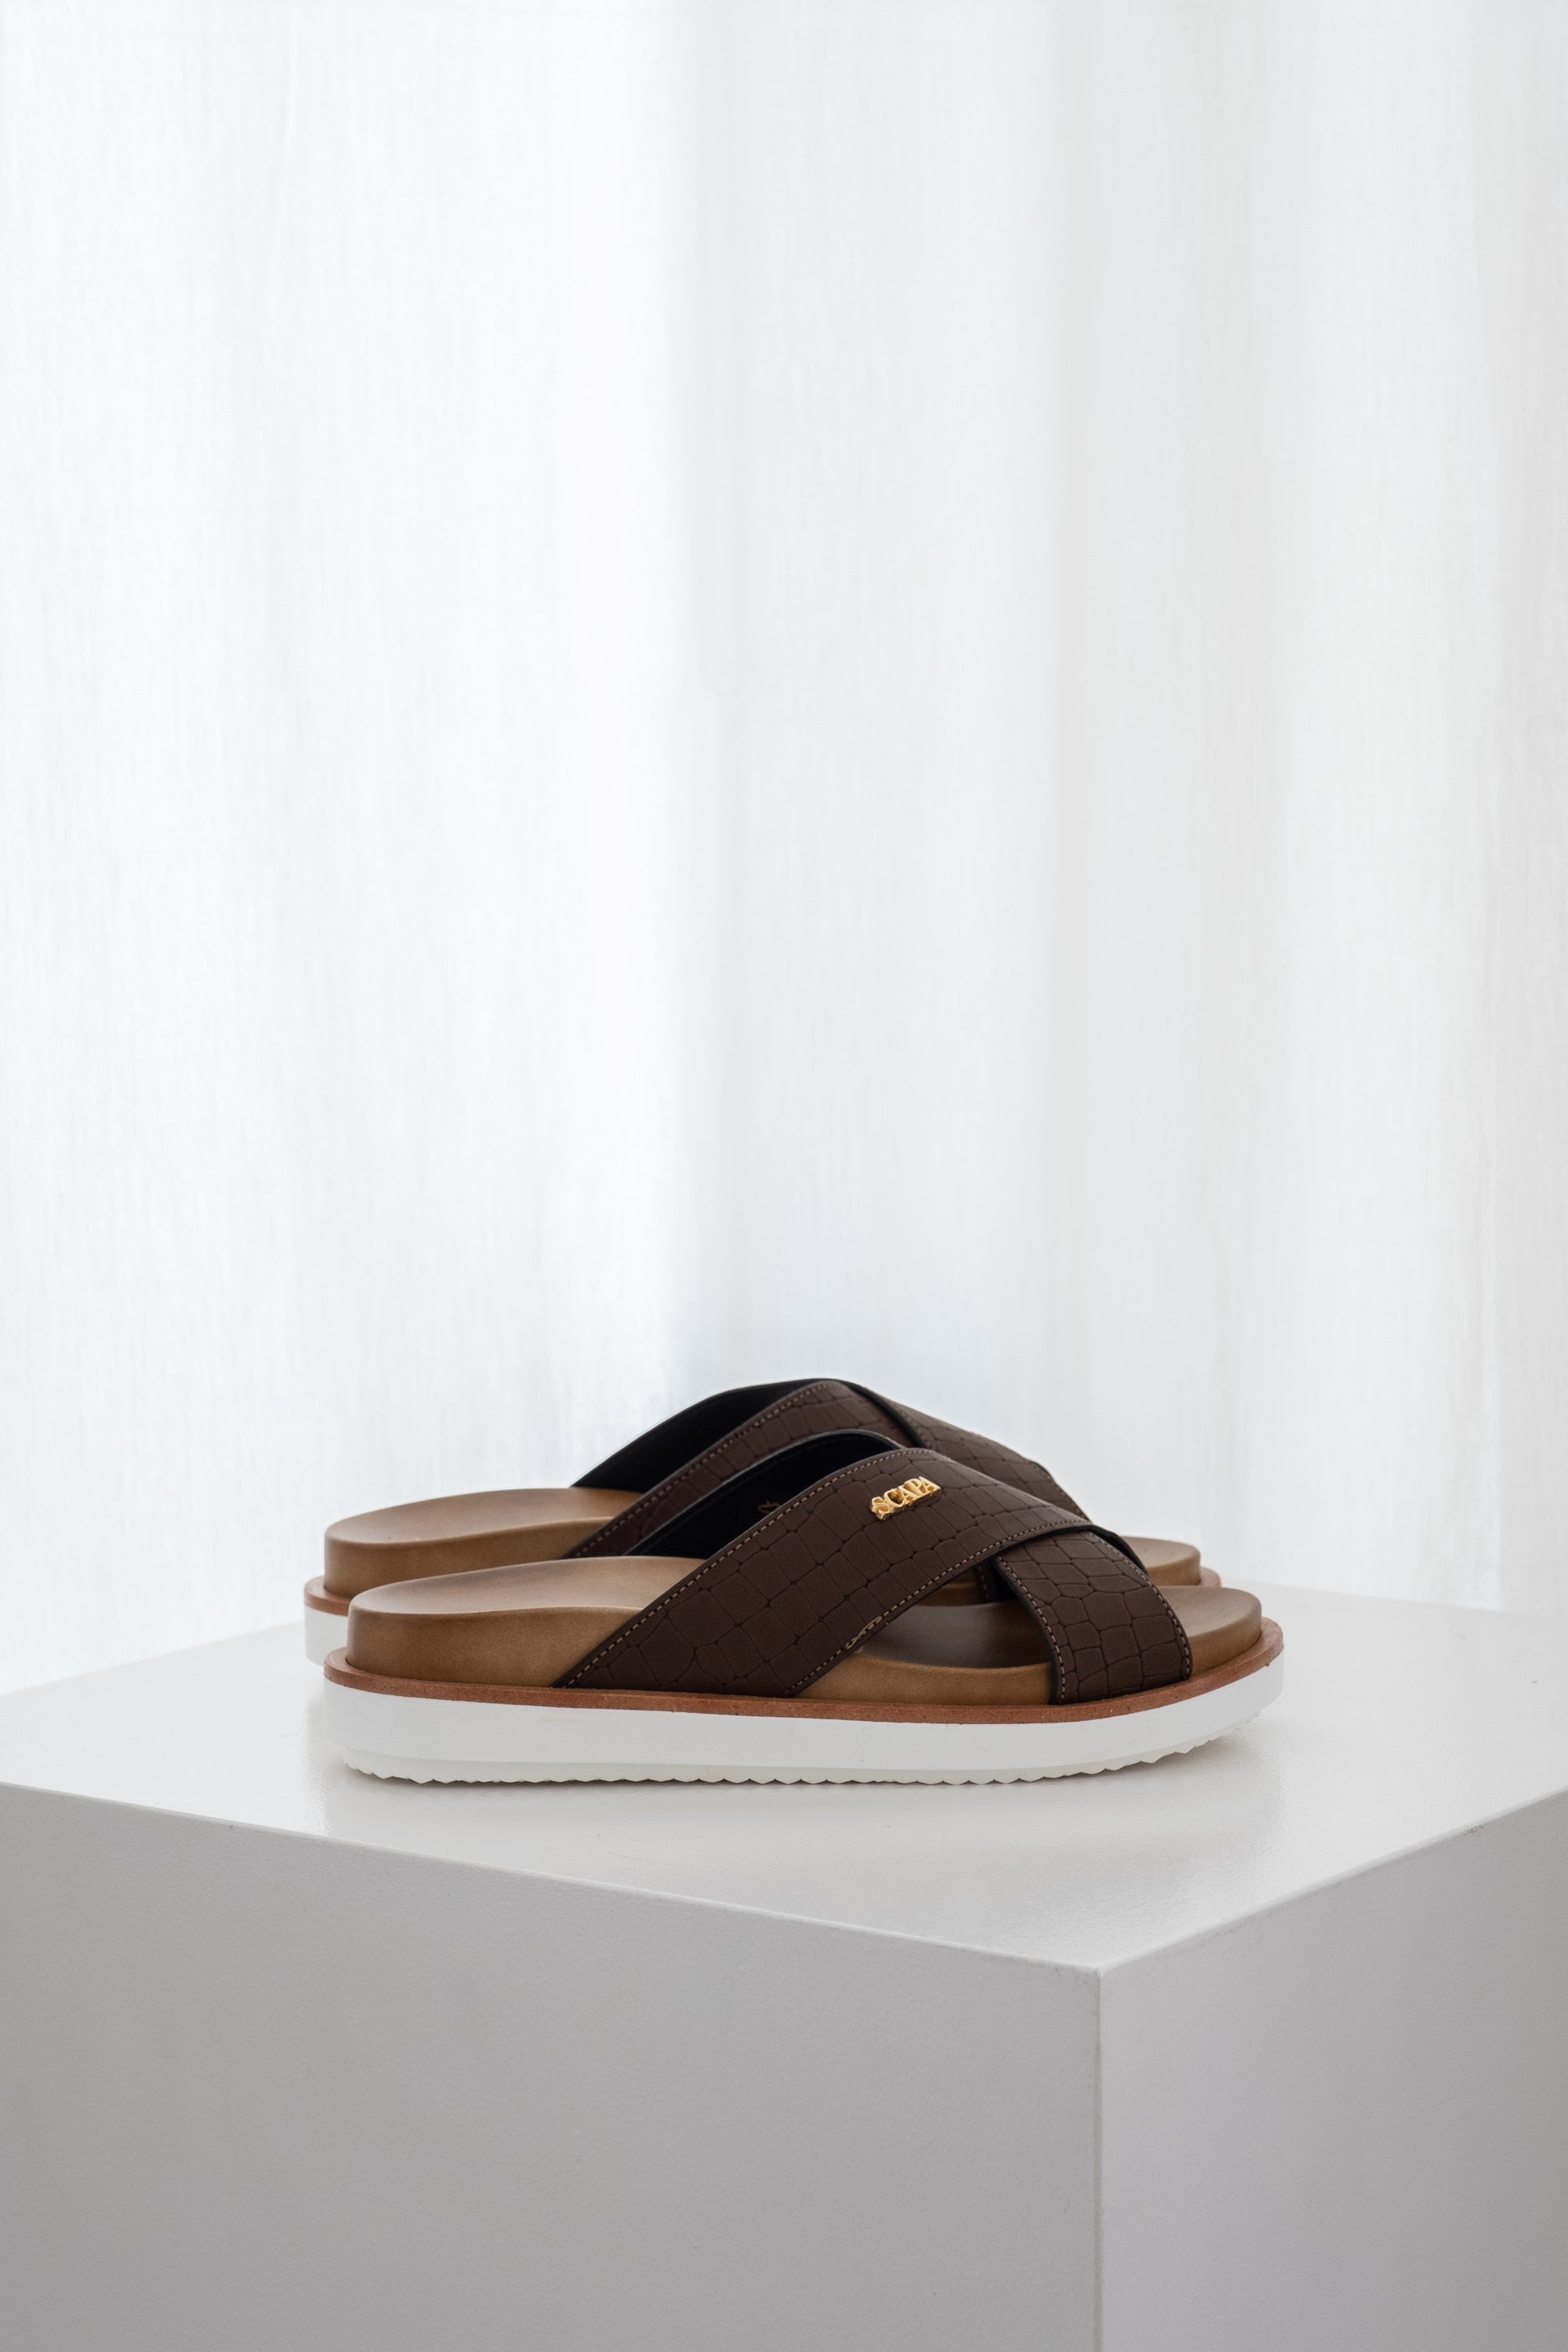 SLIP IBIZA - Shoes - SCAPA FASHION - SCAPA OFFICIAL